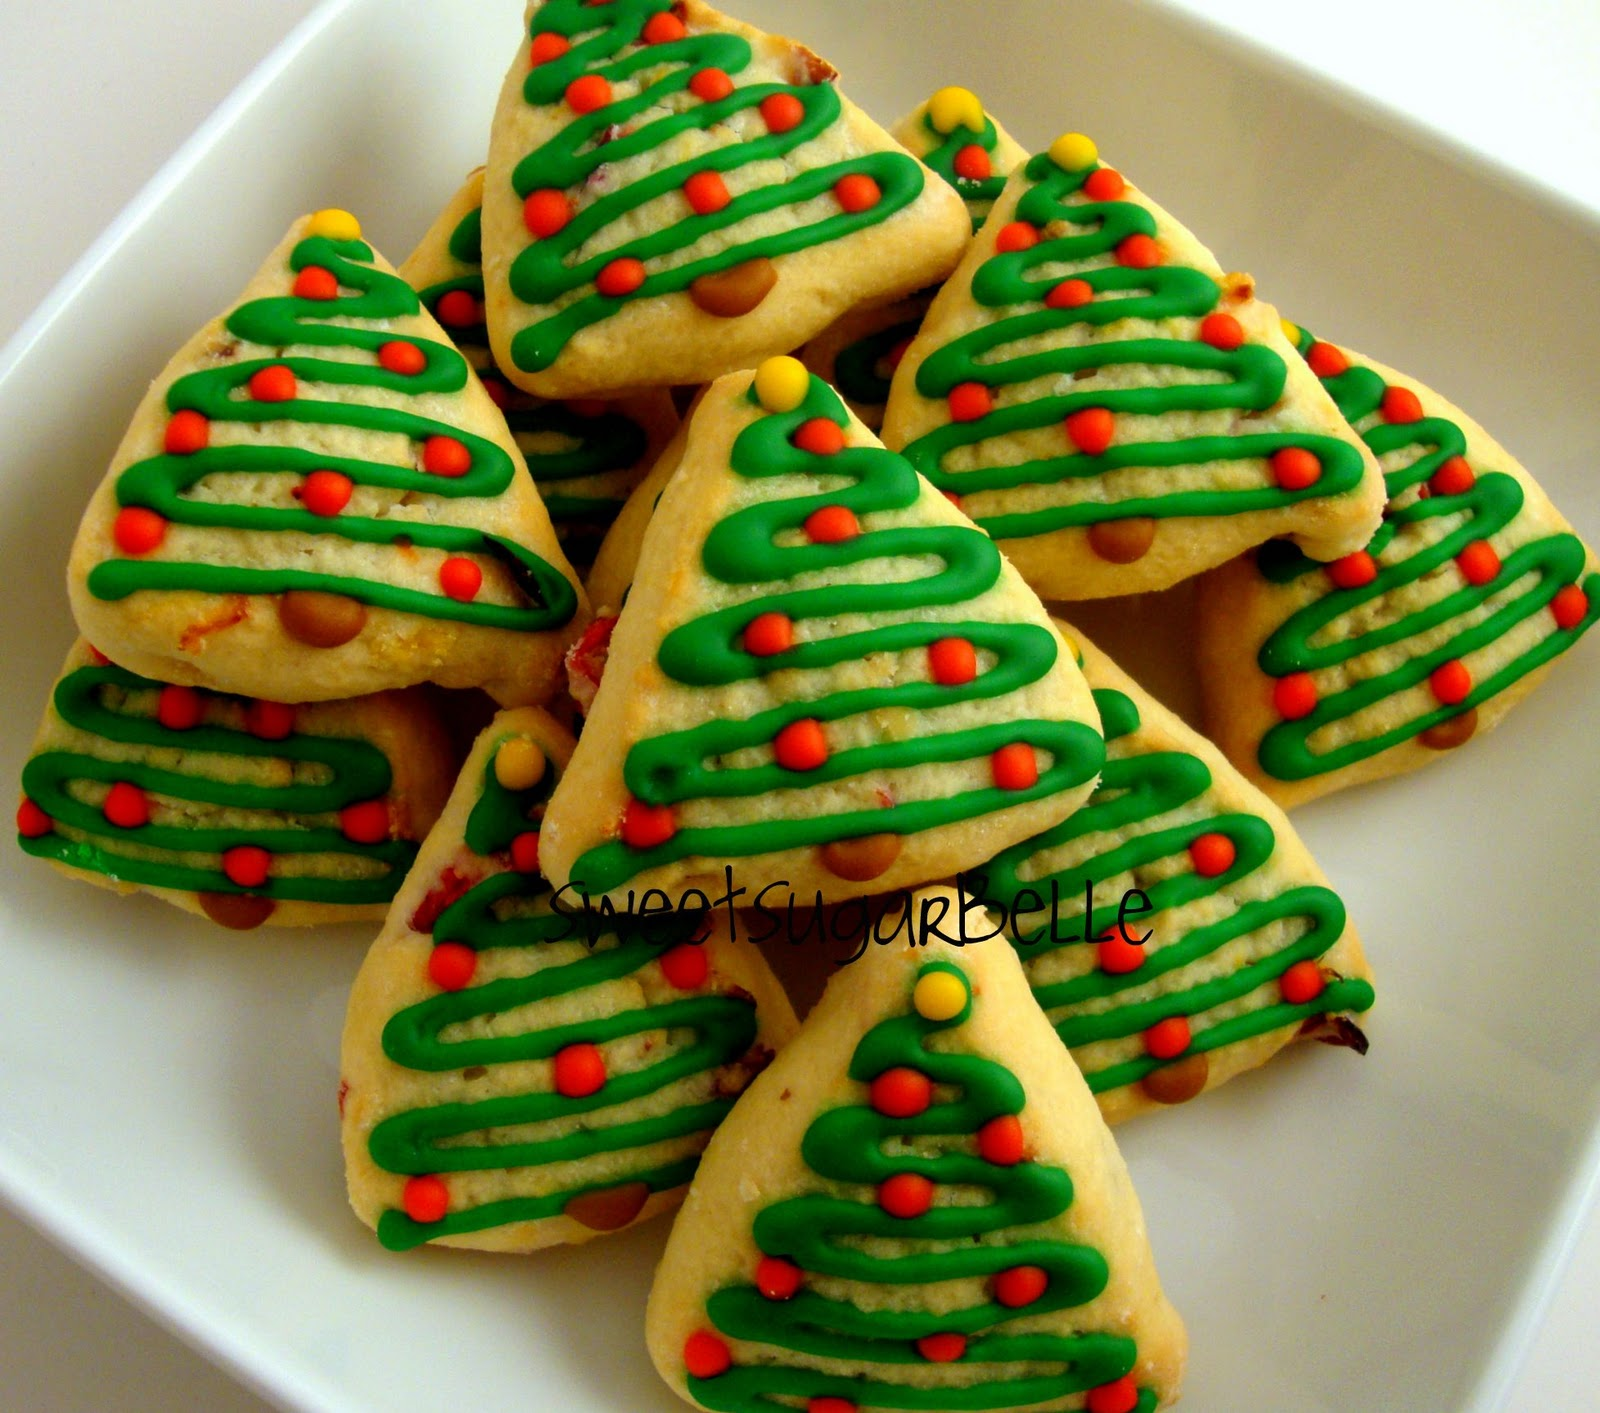 Decorating Ideas For Christmas Tree Cookies : It s not cheating decorating storebought cookies the